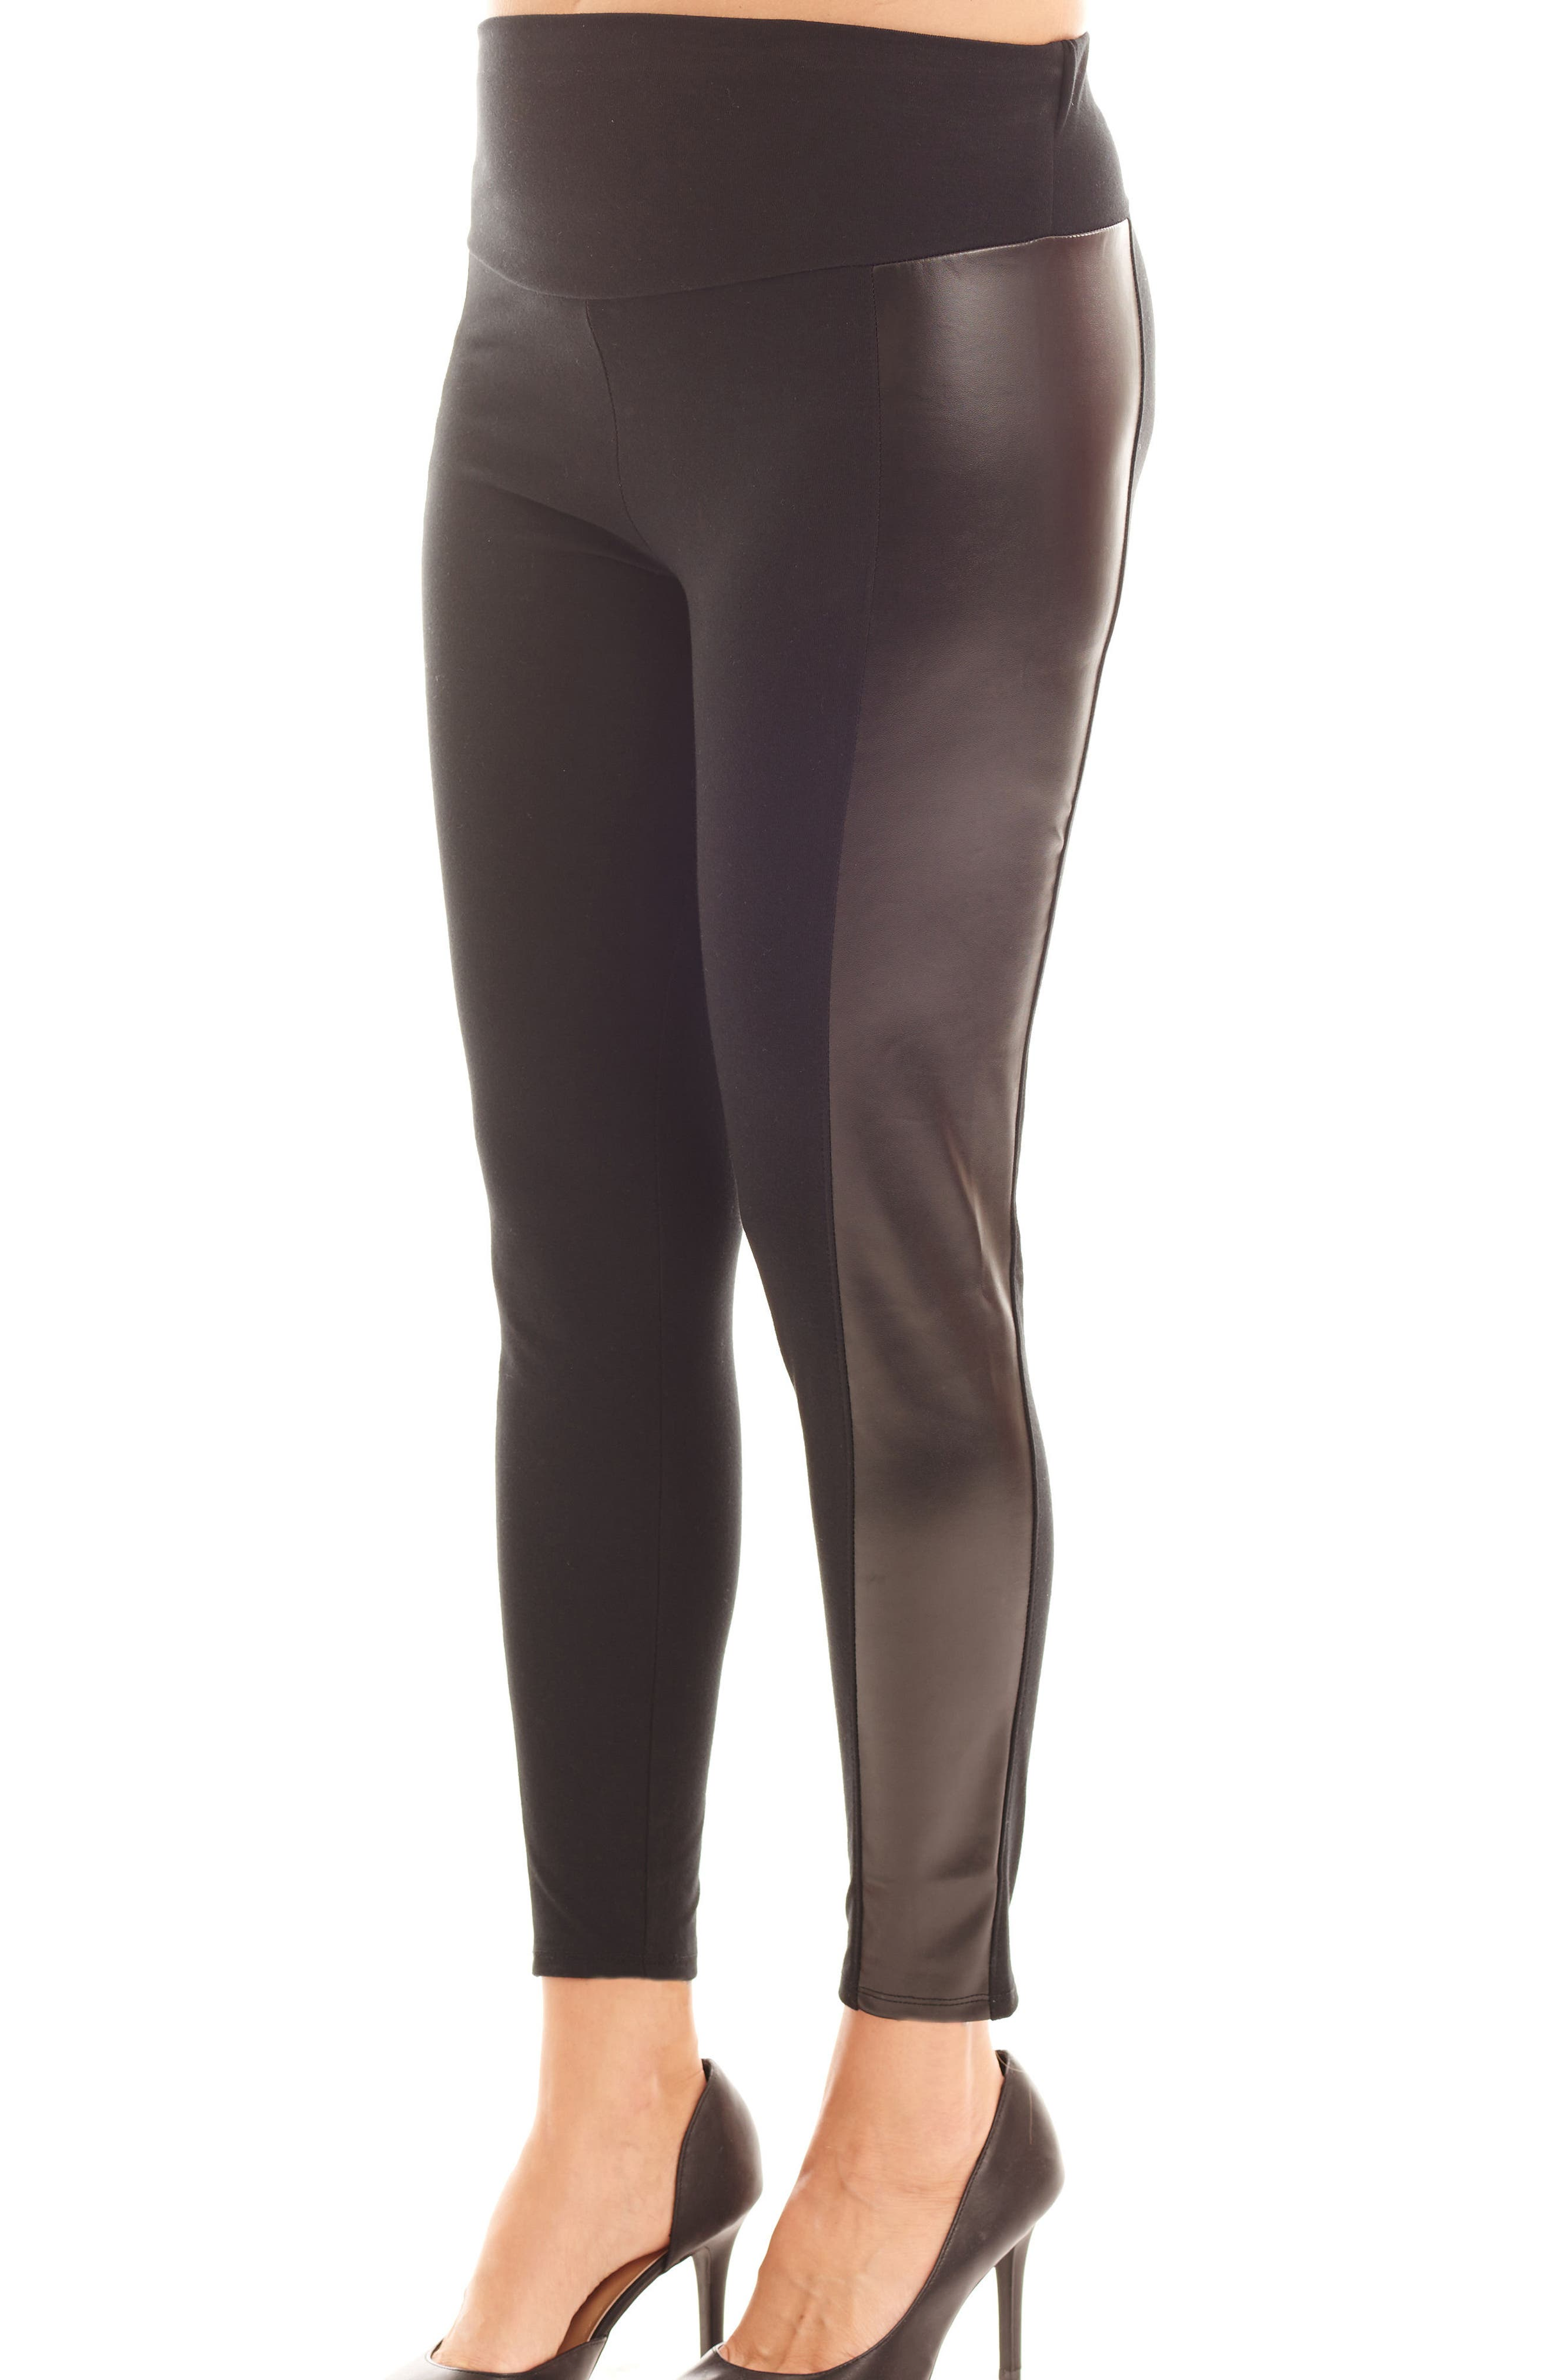 Ella Faux Leather & Knit Maternity Leggings,                             Alternate thumbnail 3, color,                             001